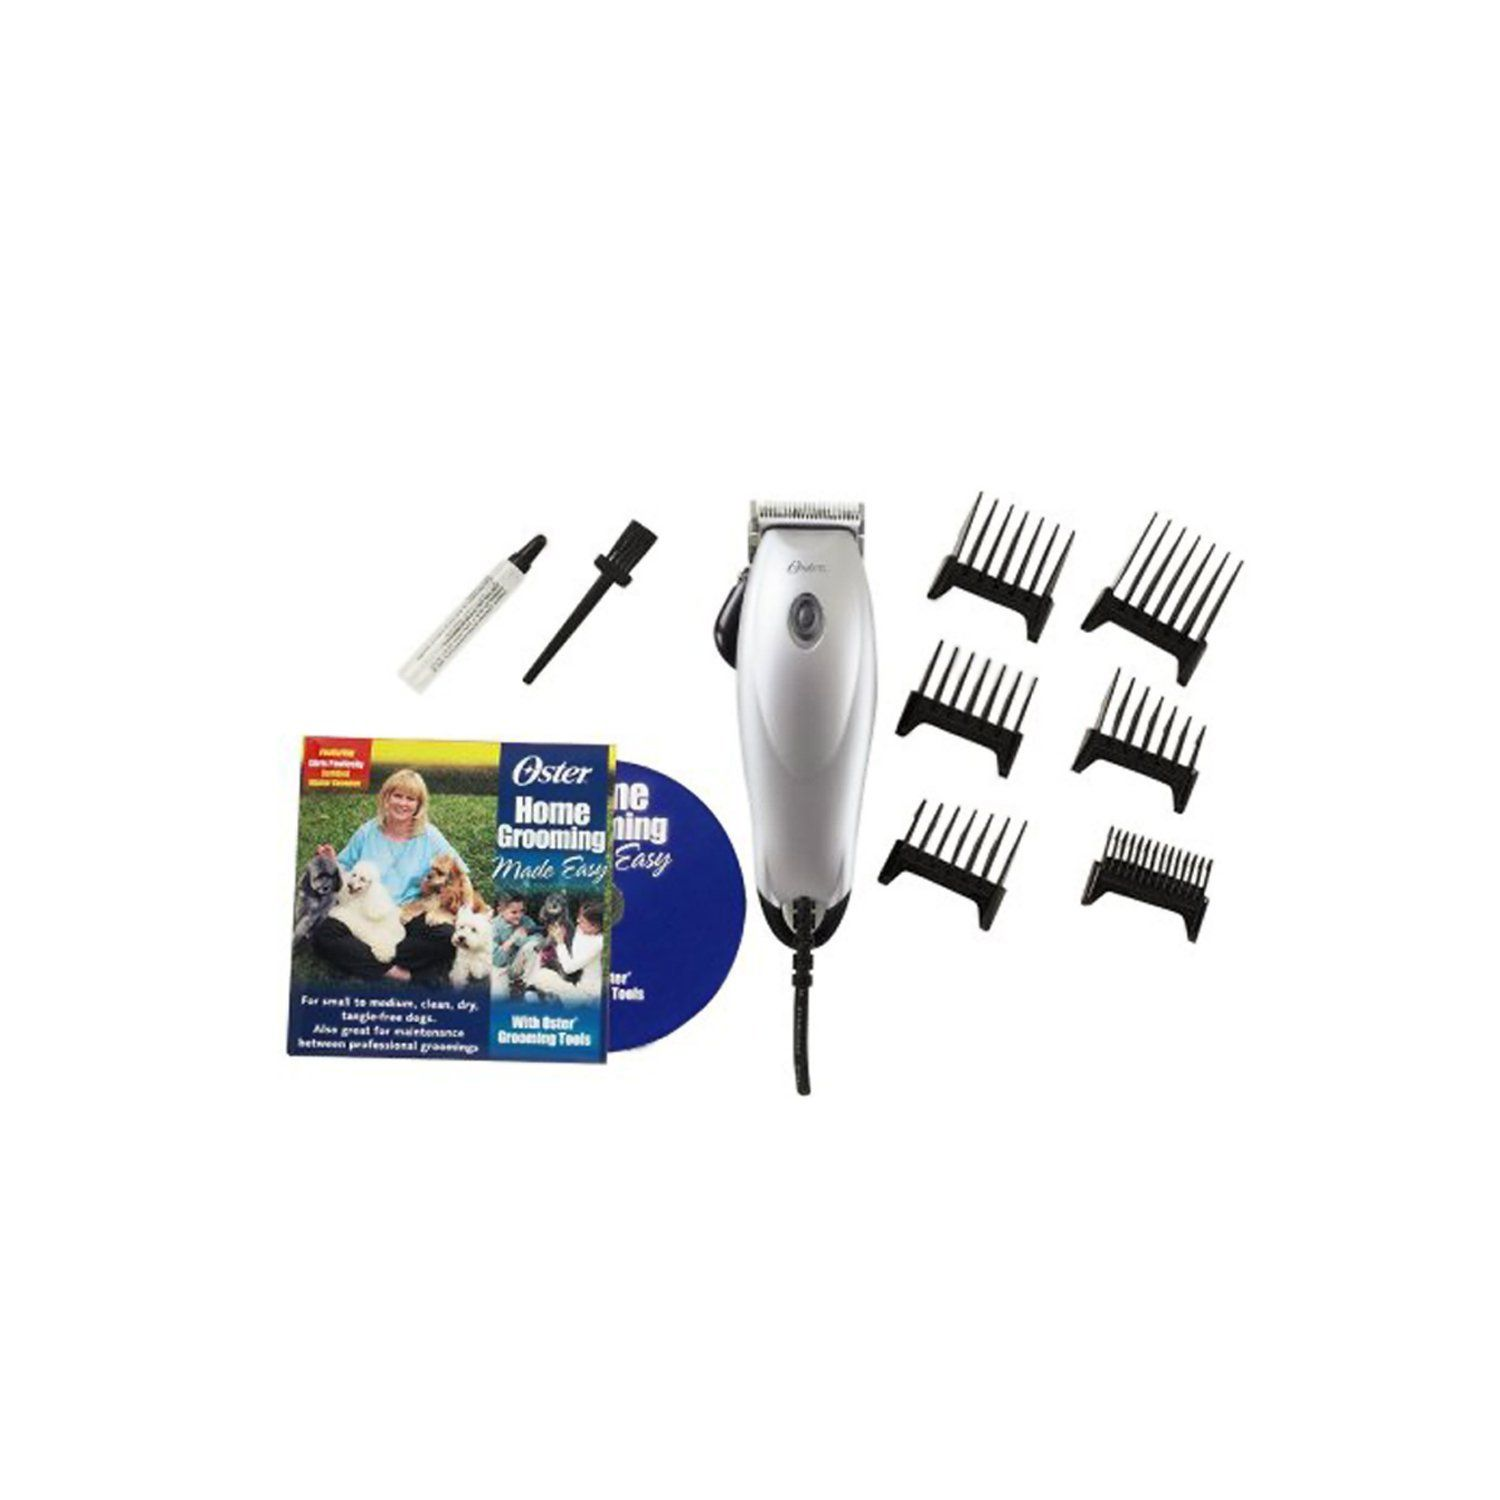 Jarden Consumer Solutions Oster Home Grooming Kit Blue 10 Piece 78950 100 Find Out More Details By Clicking The Image Grooming Kit Pet Grooming Grooming